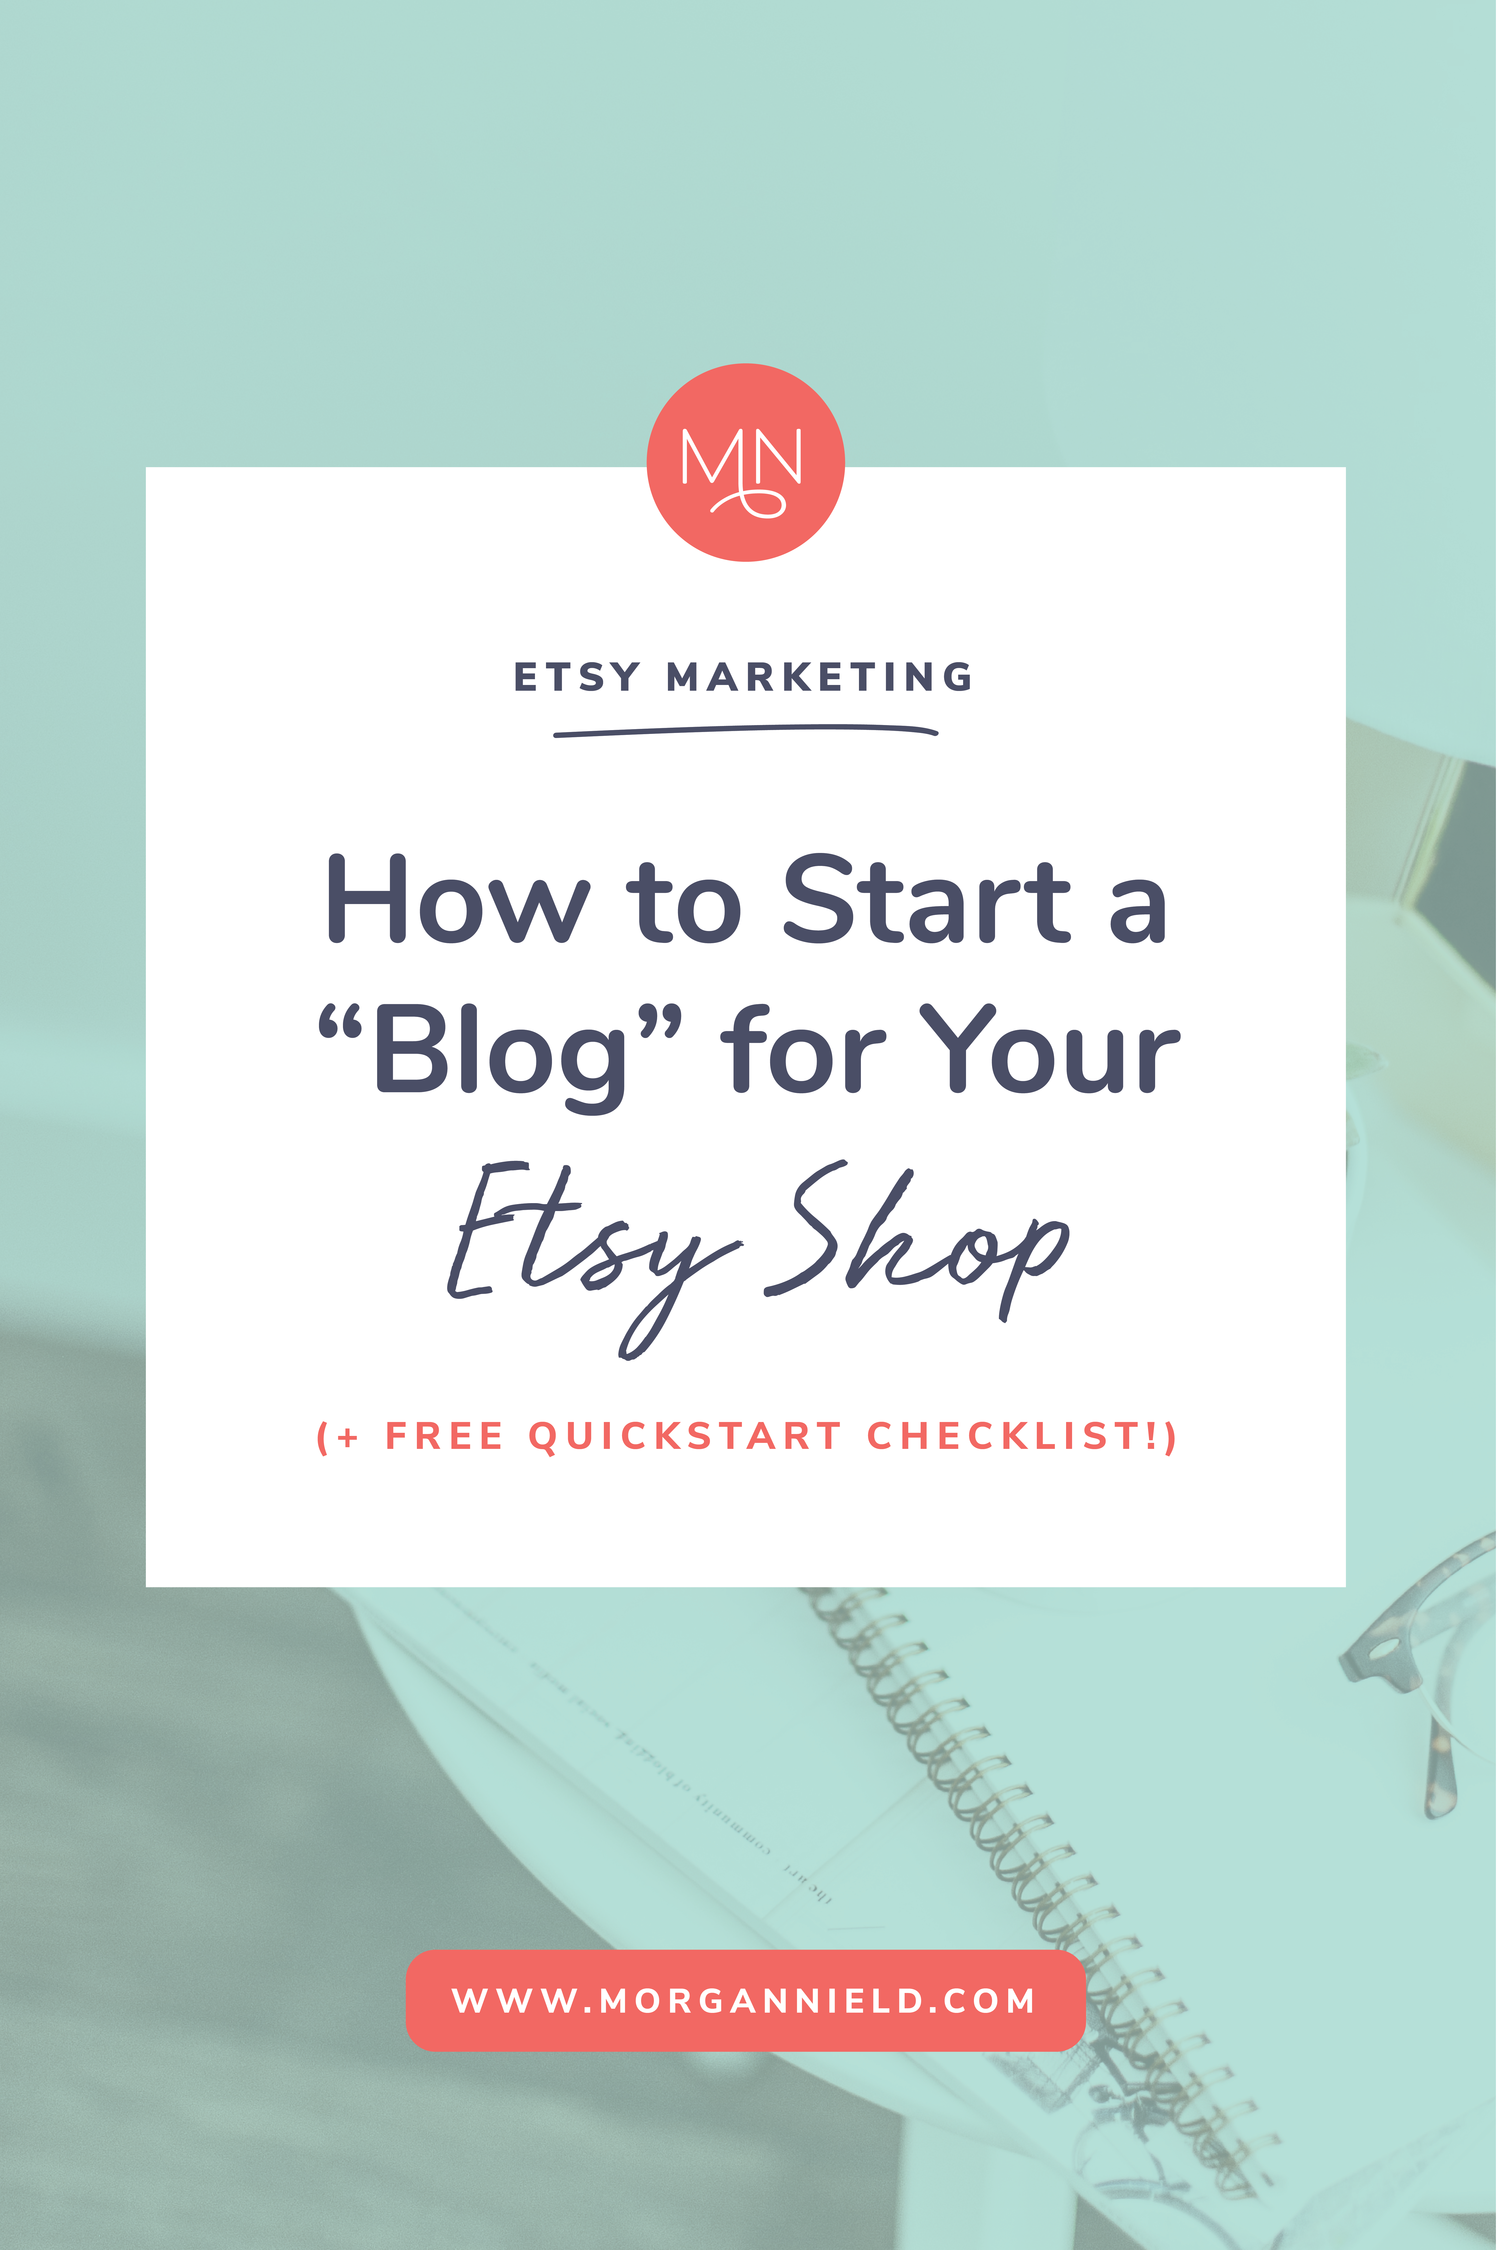 How to start a blog for your Etsy shop | Blogging, Business and Etsy